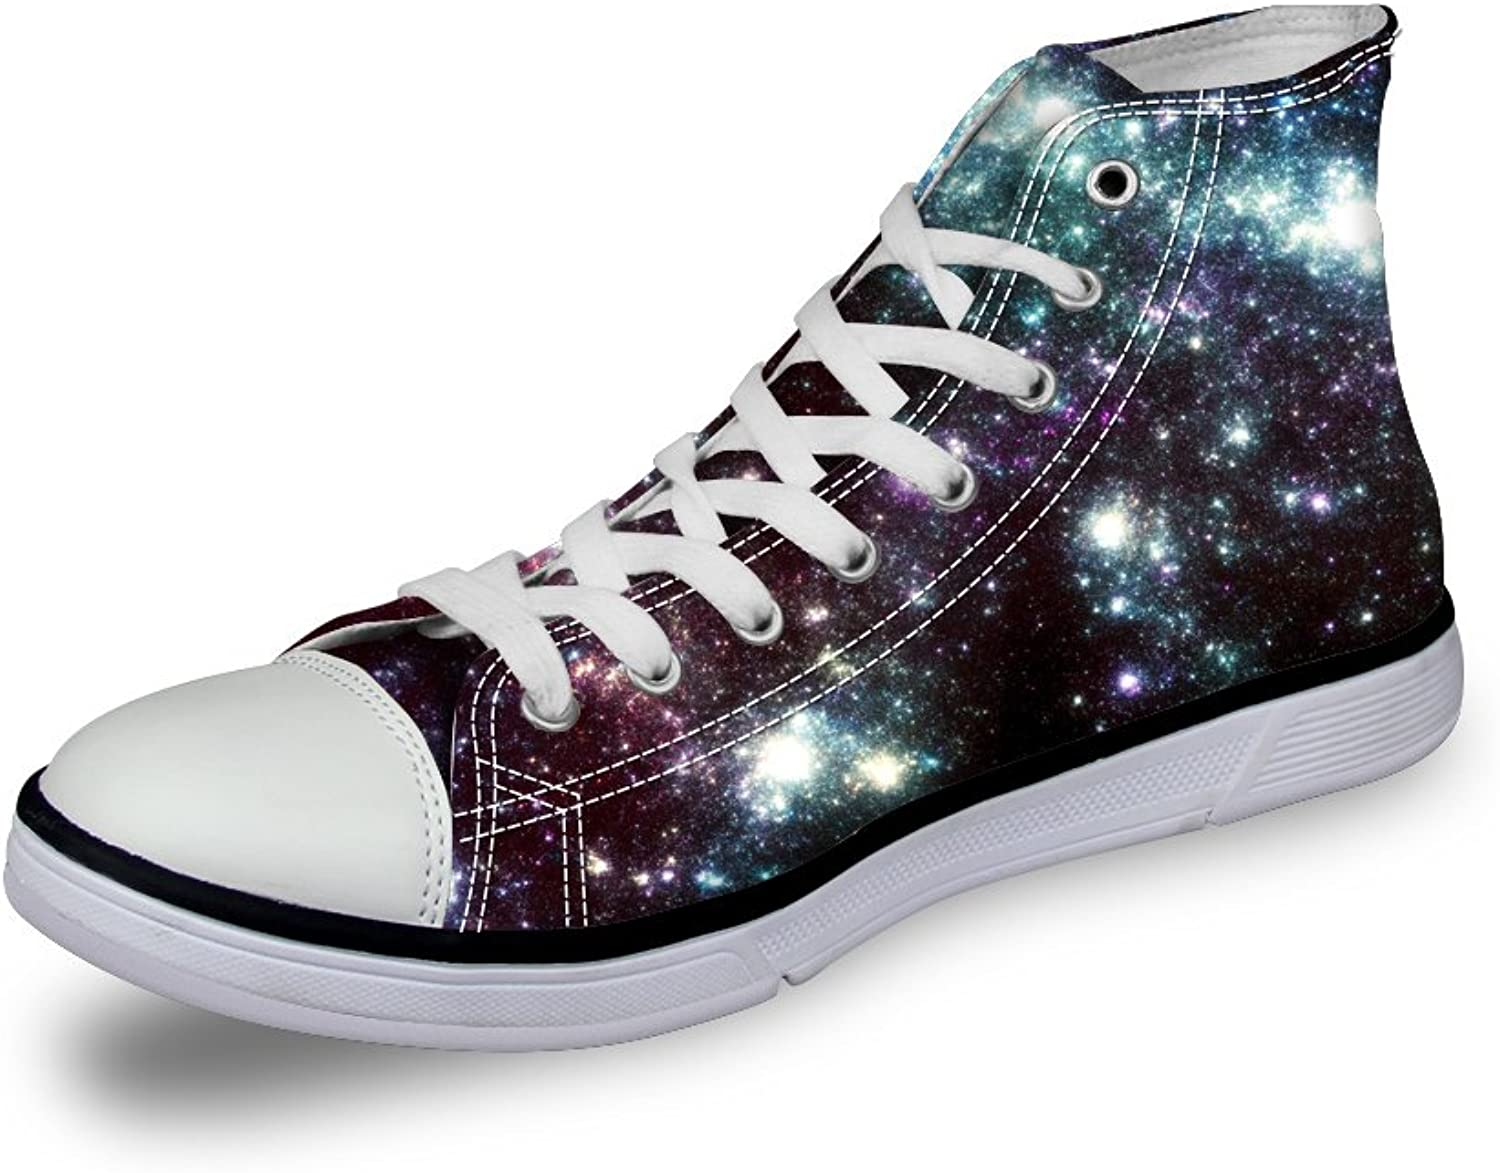 Frestree Comfortable High Top Sneakers for Women Flat Style shoes